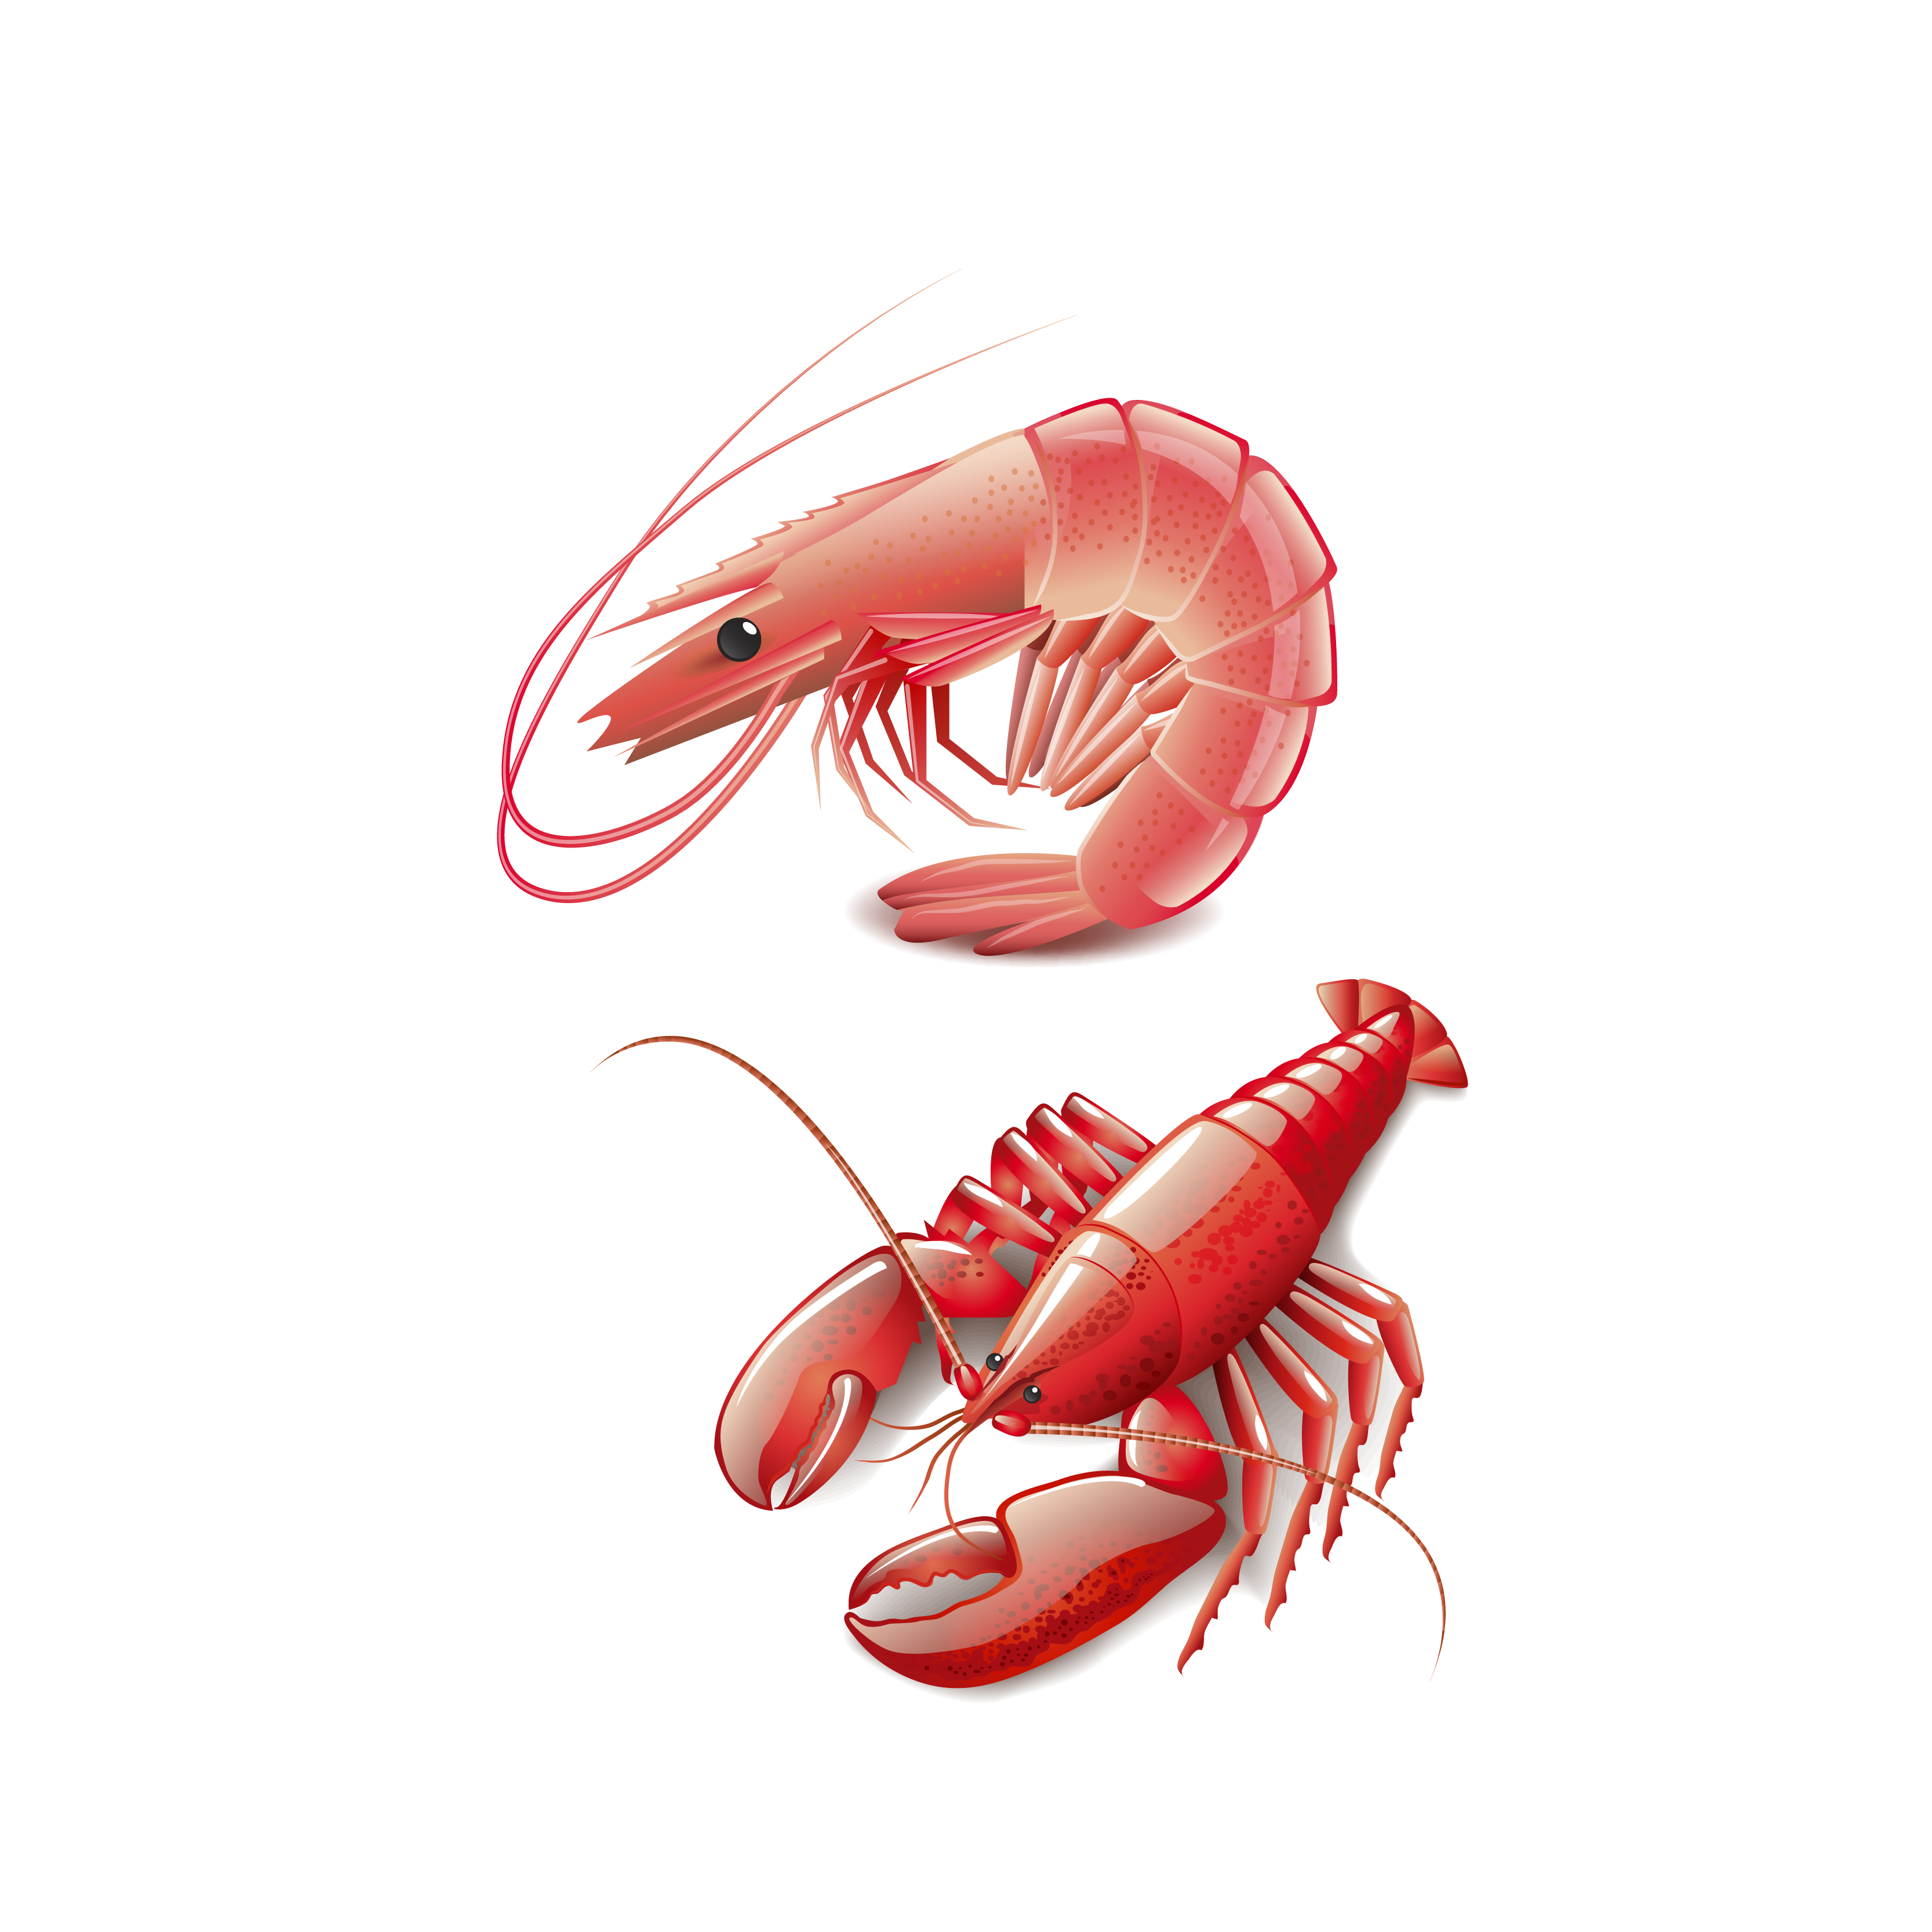 Lobster clipart cooked. Seafood homarus cooking red